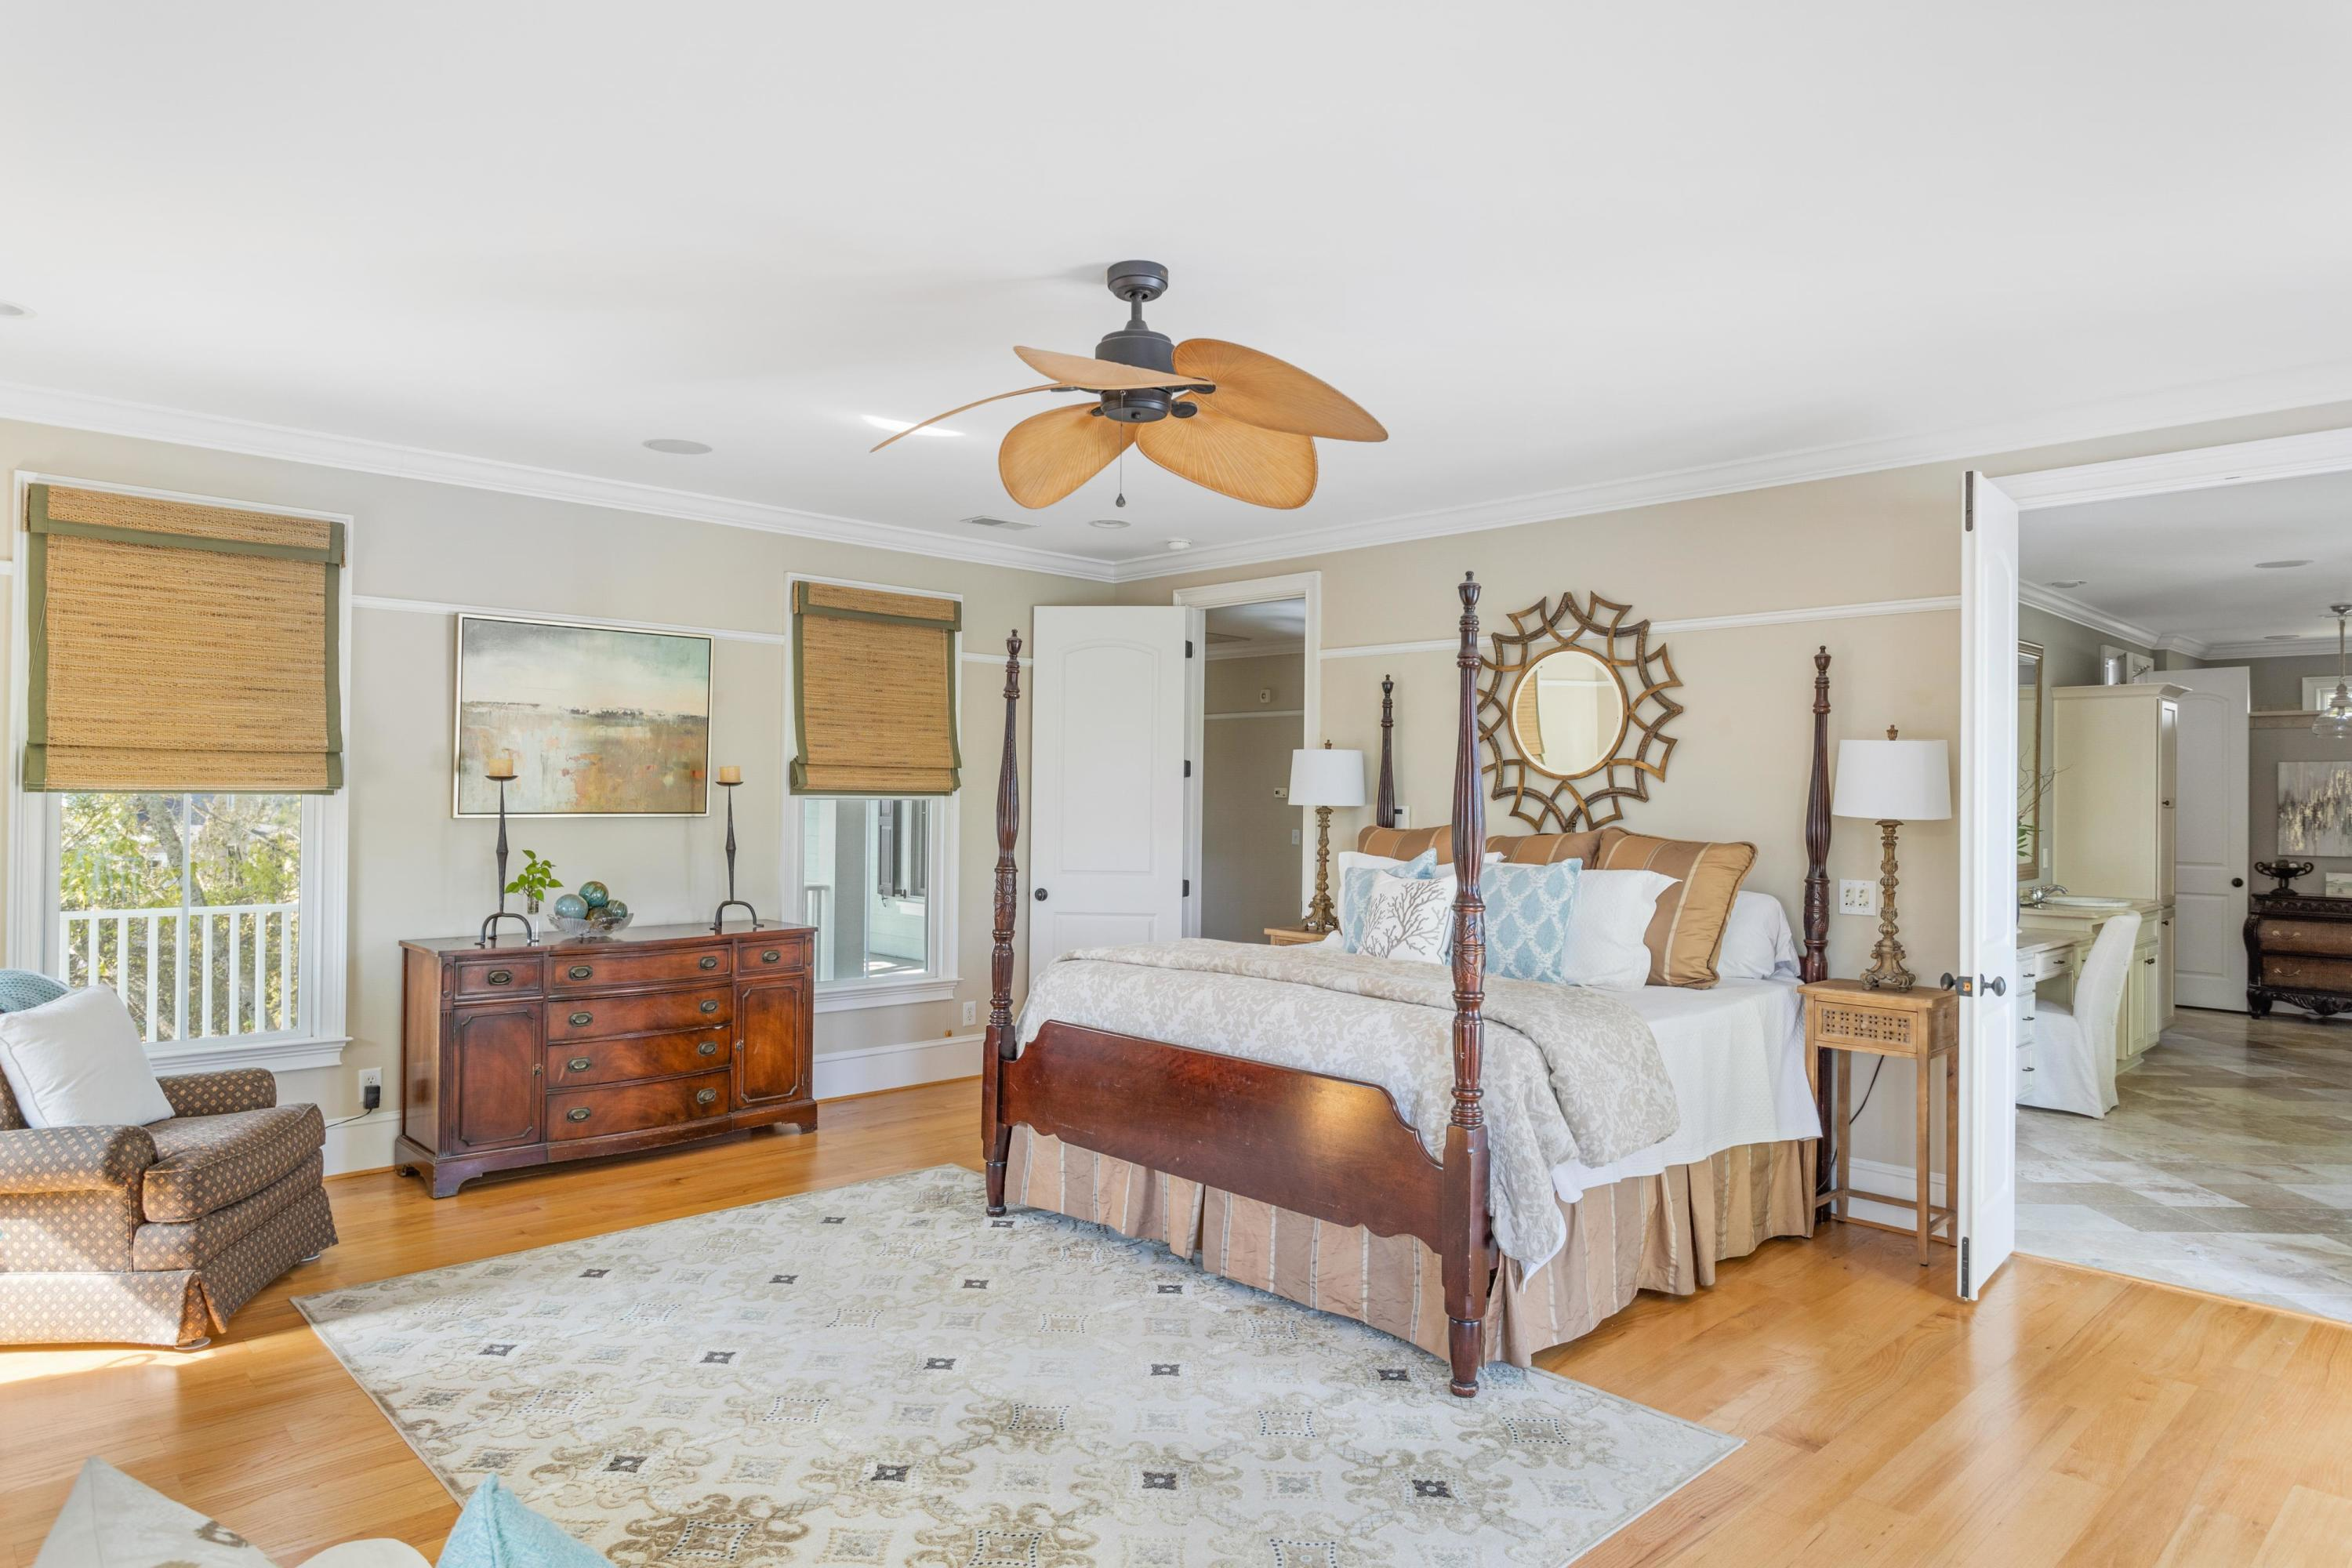 Rivertowne Country Club Homes For Sale - 1629 Rivertowne Country Club, Mount Pleasant, SC - 1